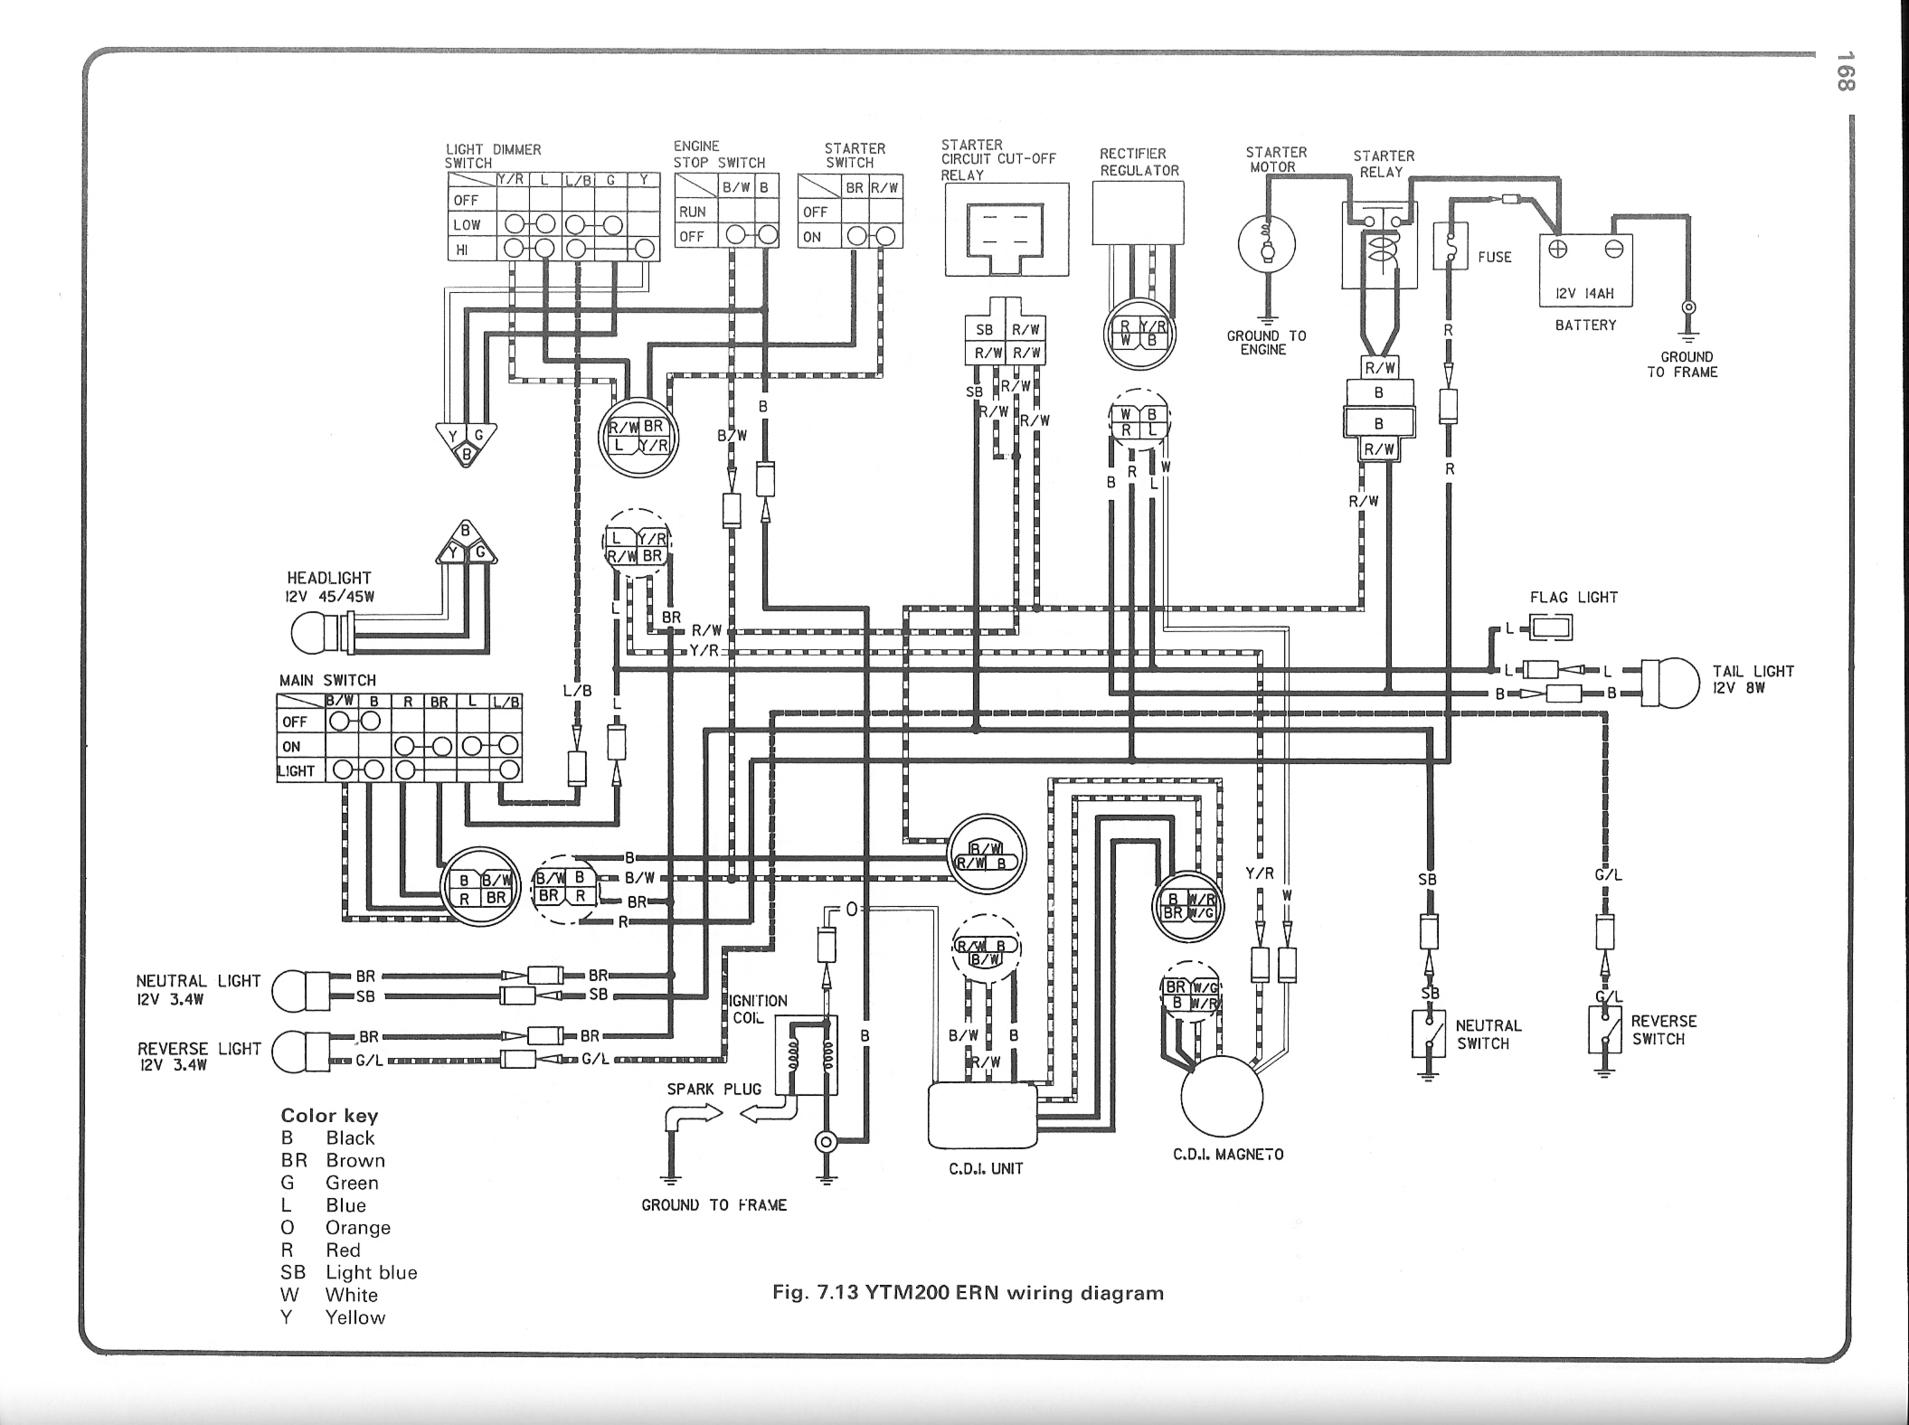 yamaha warrior wiring diagram the wiring diagram 2001 yamaha warrior 350 wiring diagram nodasystech wiring diagram